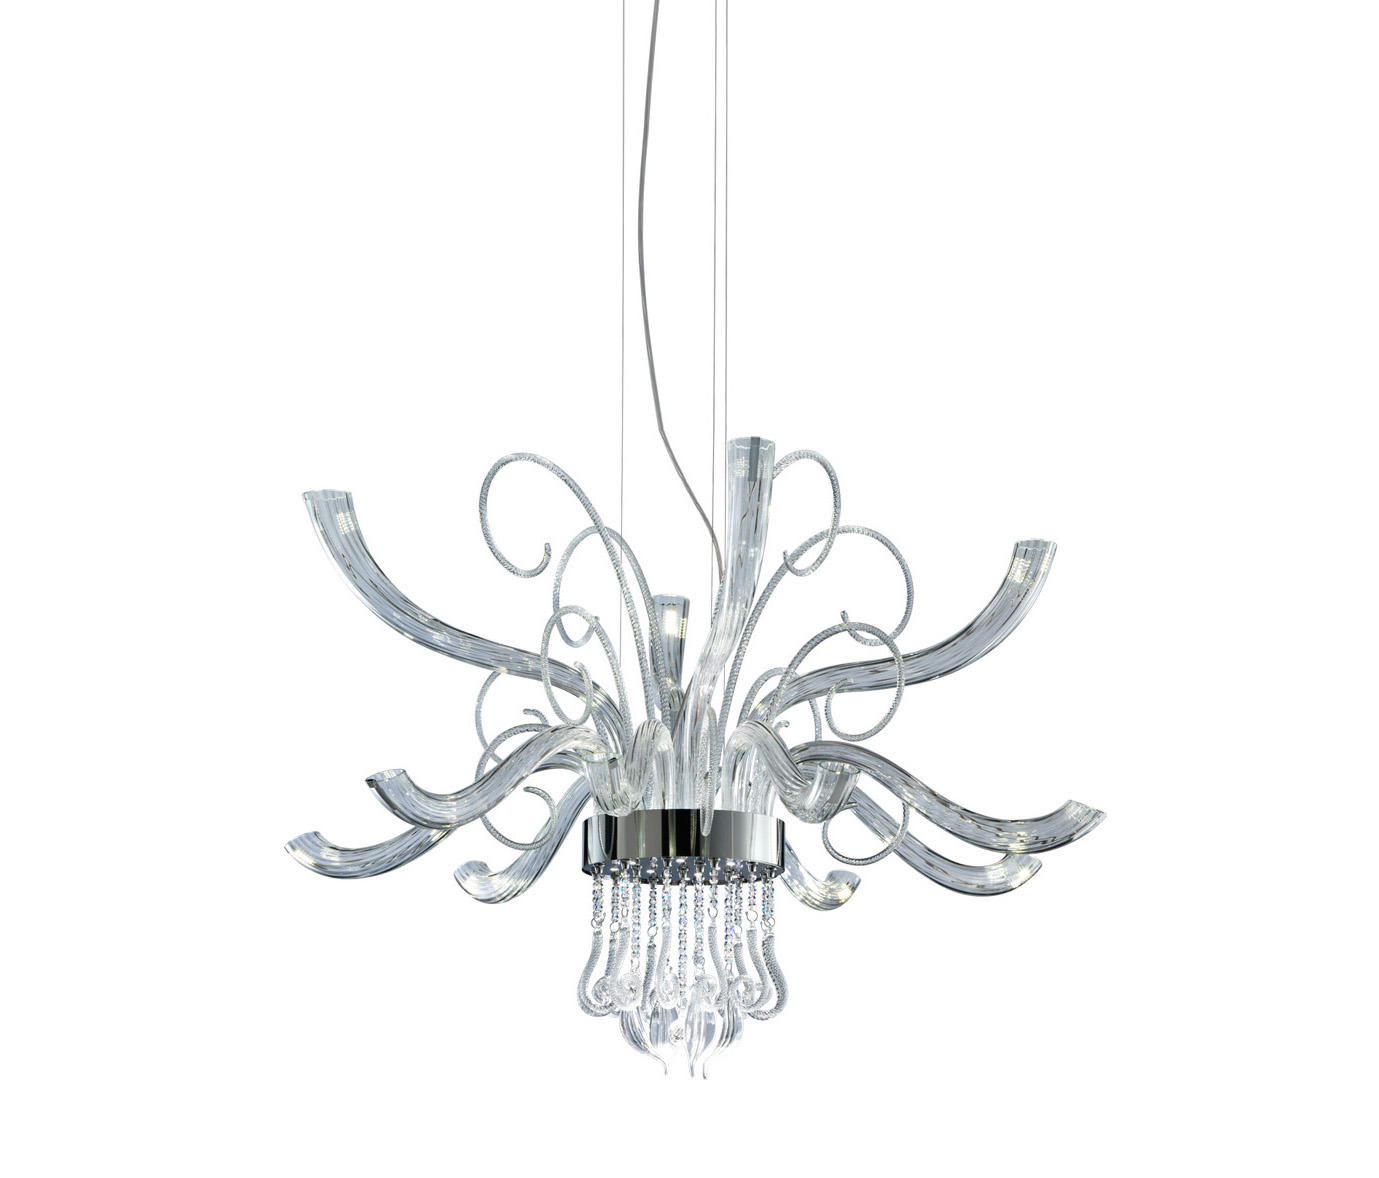 Elysee l12 general lighting from leucos usa architonic elysee l12 by leucos usa general lighting arubaitofo Image collections